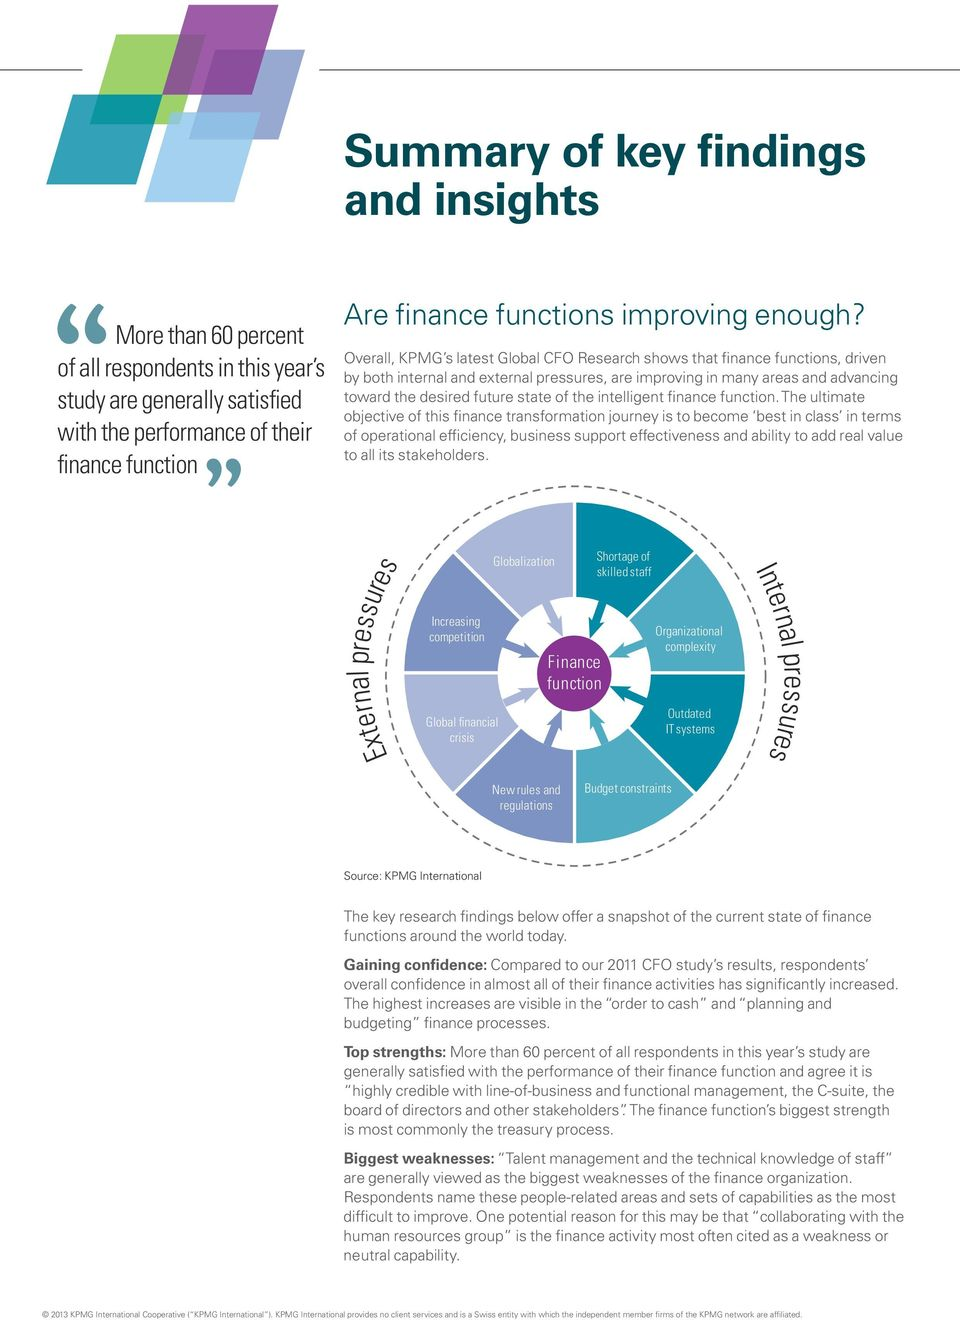 Overall, KPMG s latest Global CFO Research shows that finance functions, driven by both internal and external pressures, are improving in many areas and advancing toward the desired future state of